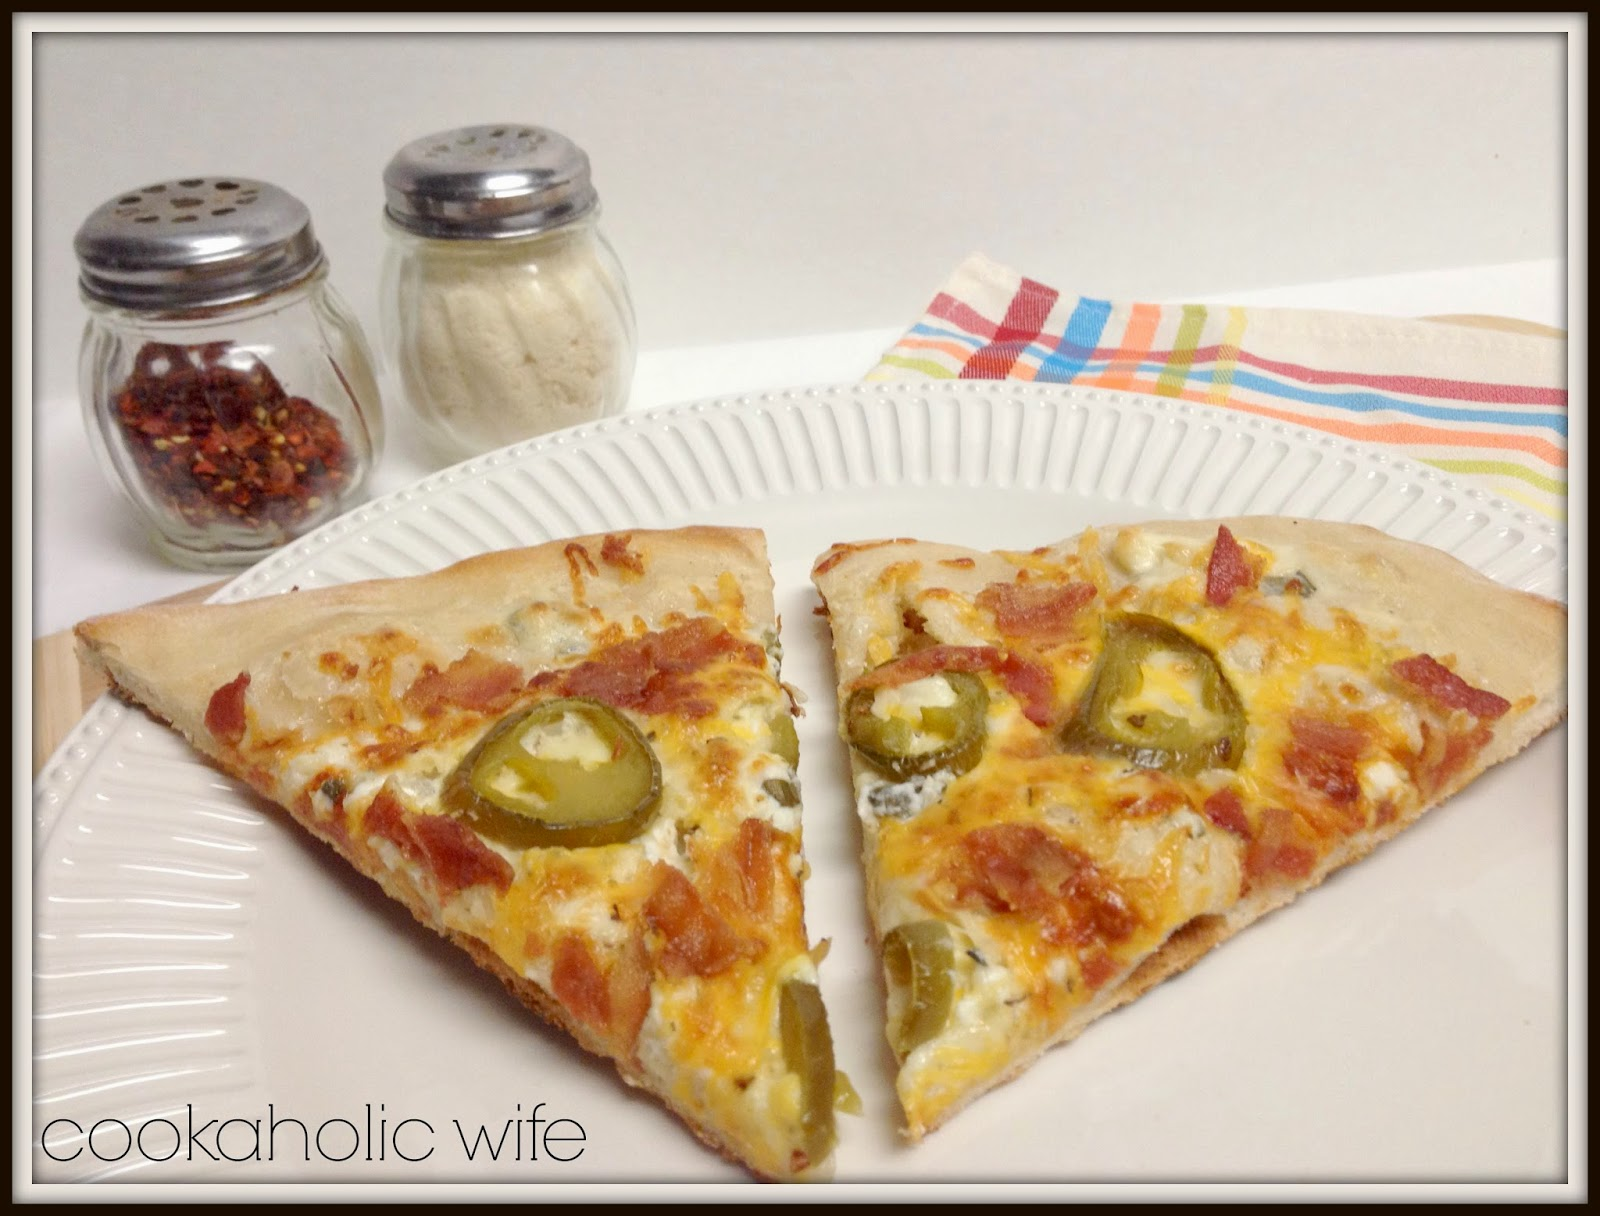 Cookaholic Wife: Recipe Remake: Jalapeno Popper Pizza